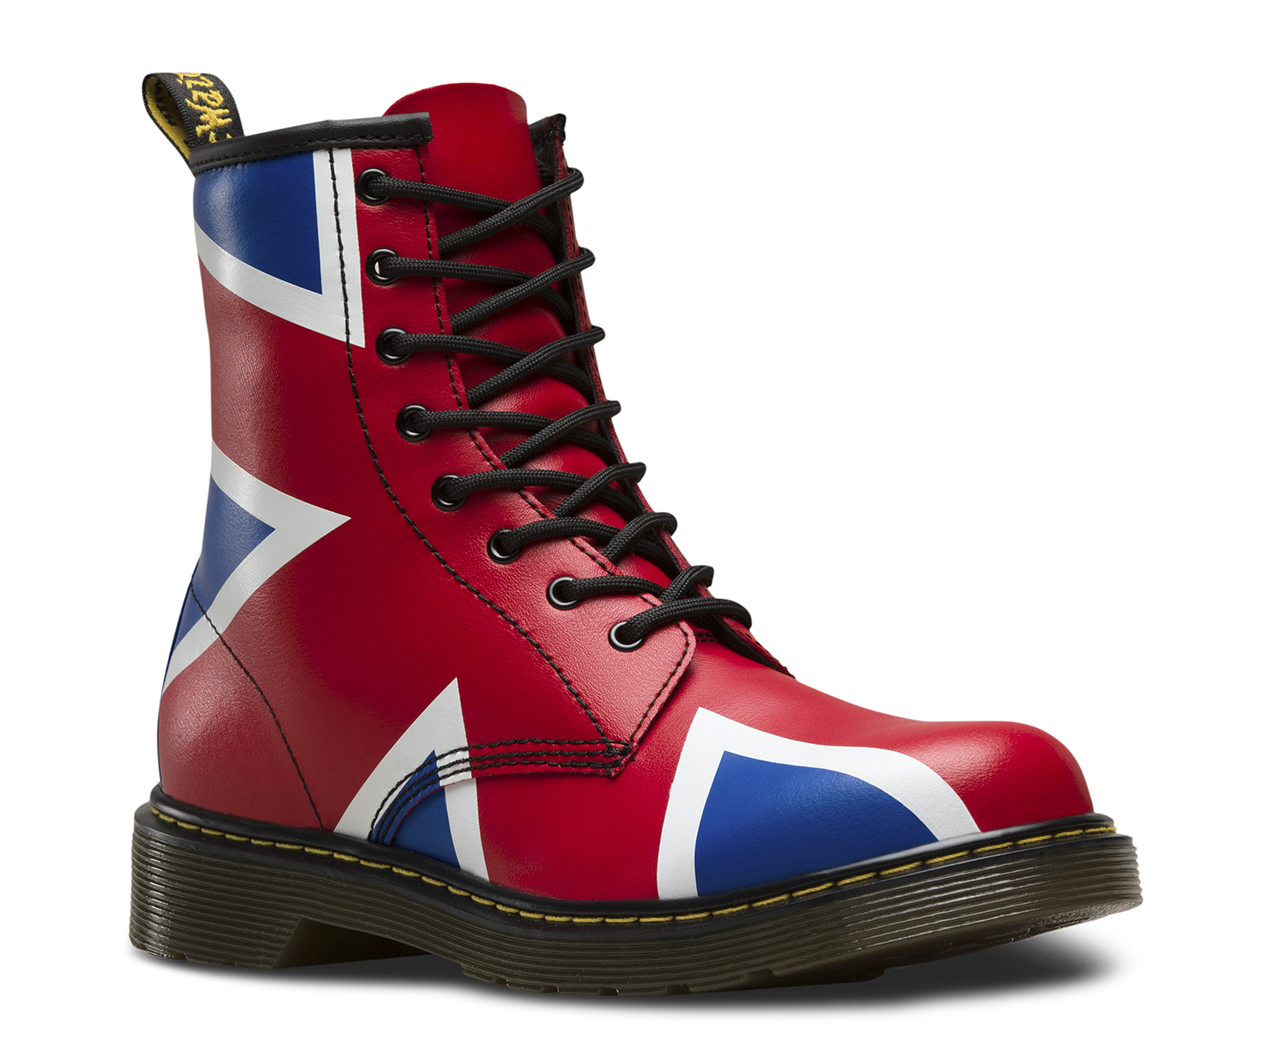 YOUTH UNION JACK 1460 | Kids' Youth Boots and Shoes ...